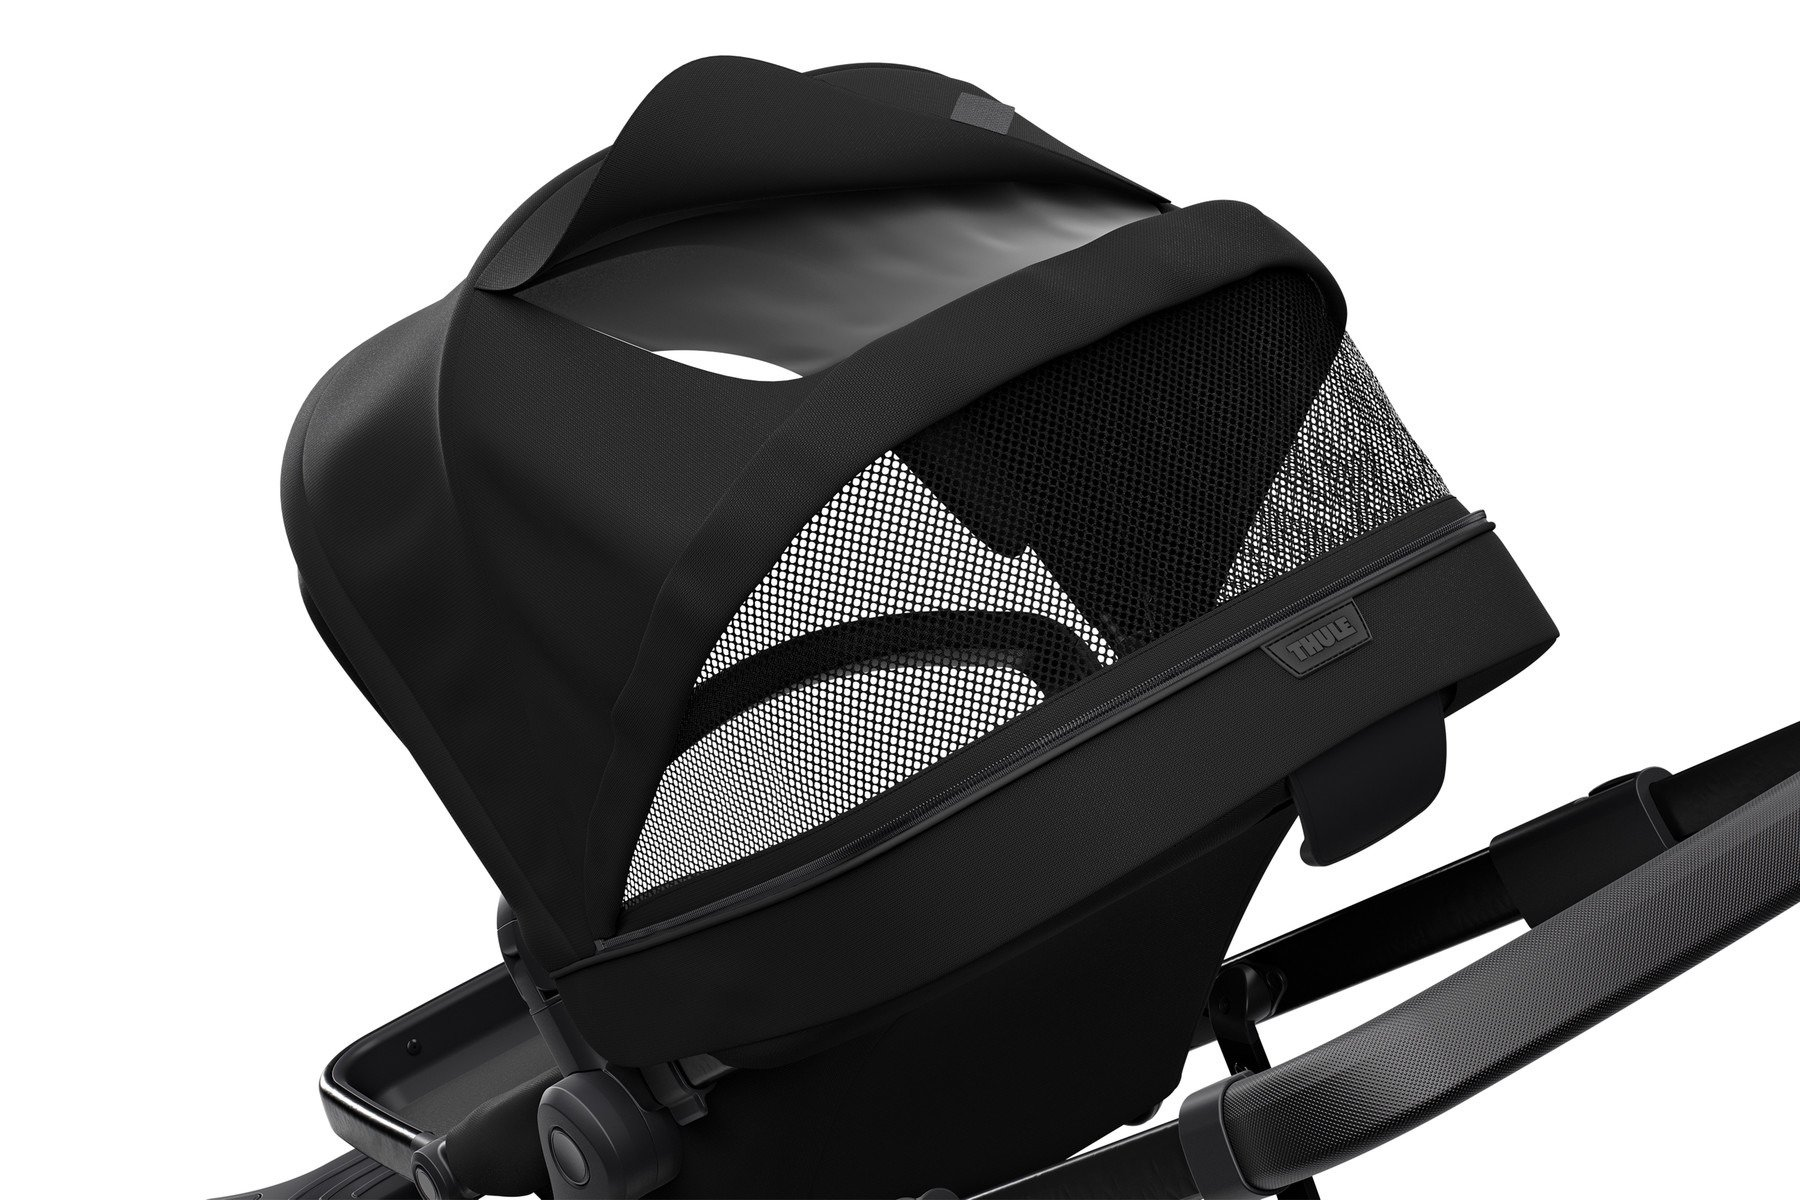 Wózek spacerowy Thule Sleek Black on Black